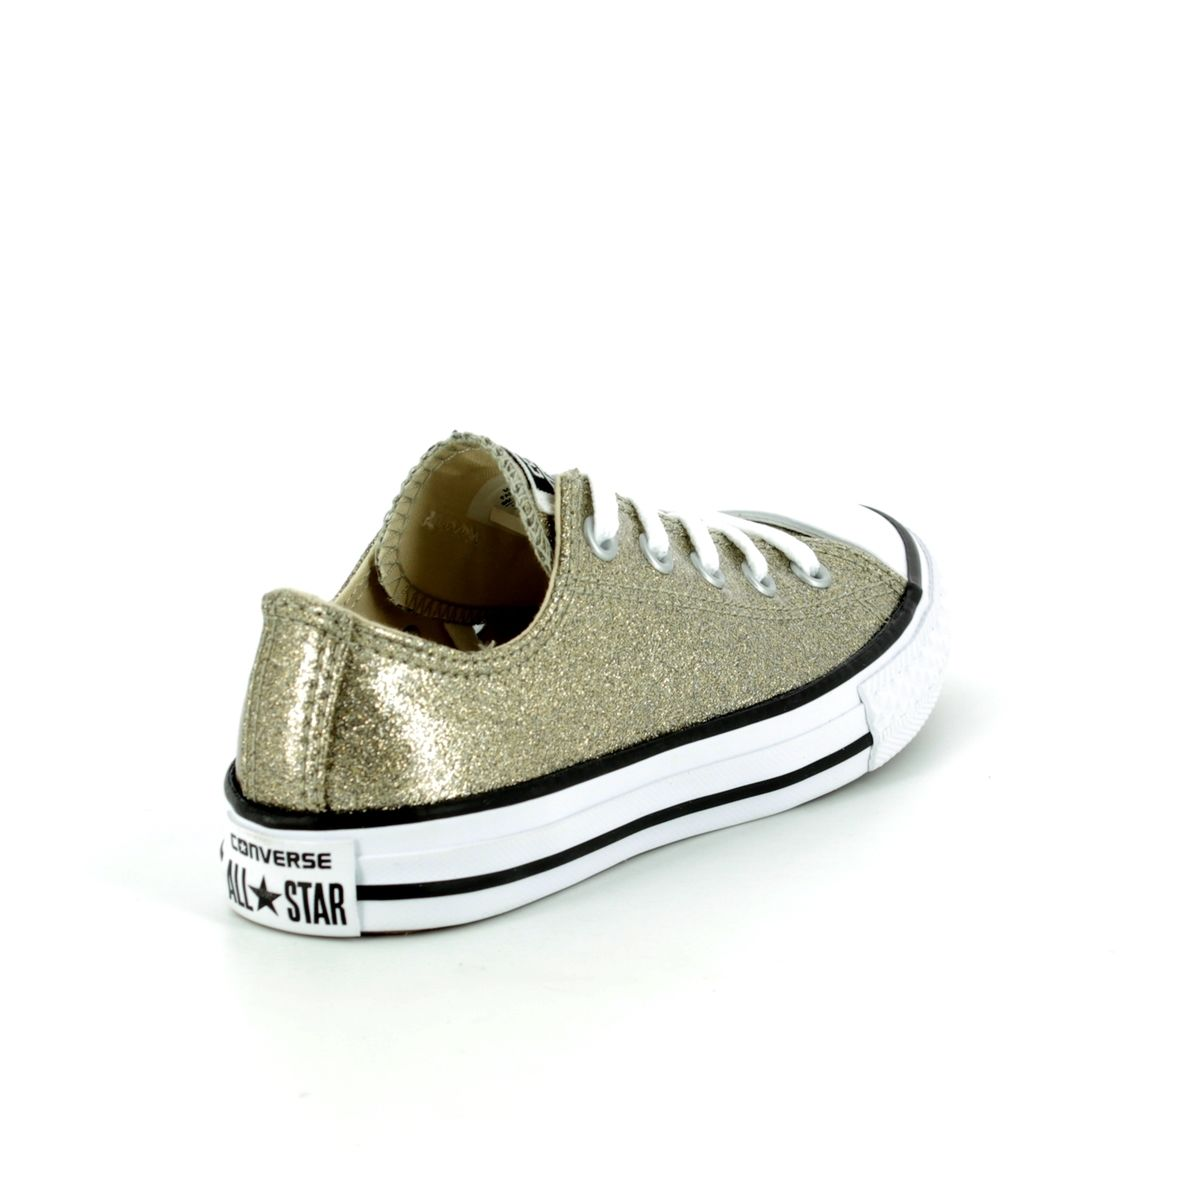 636afbb5b3c0 ... spain converse trainers gold 660046c all star ox youth 9268d a91d7